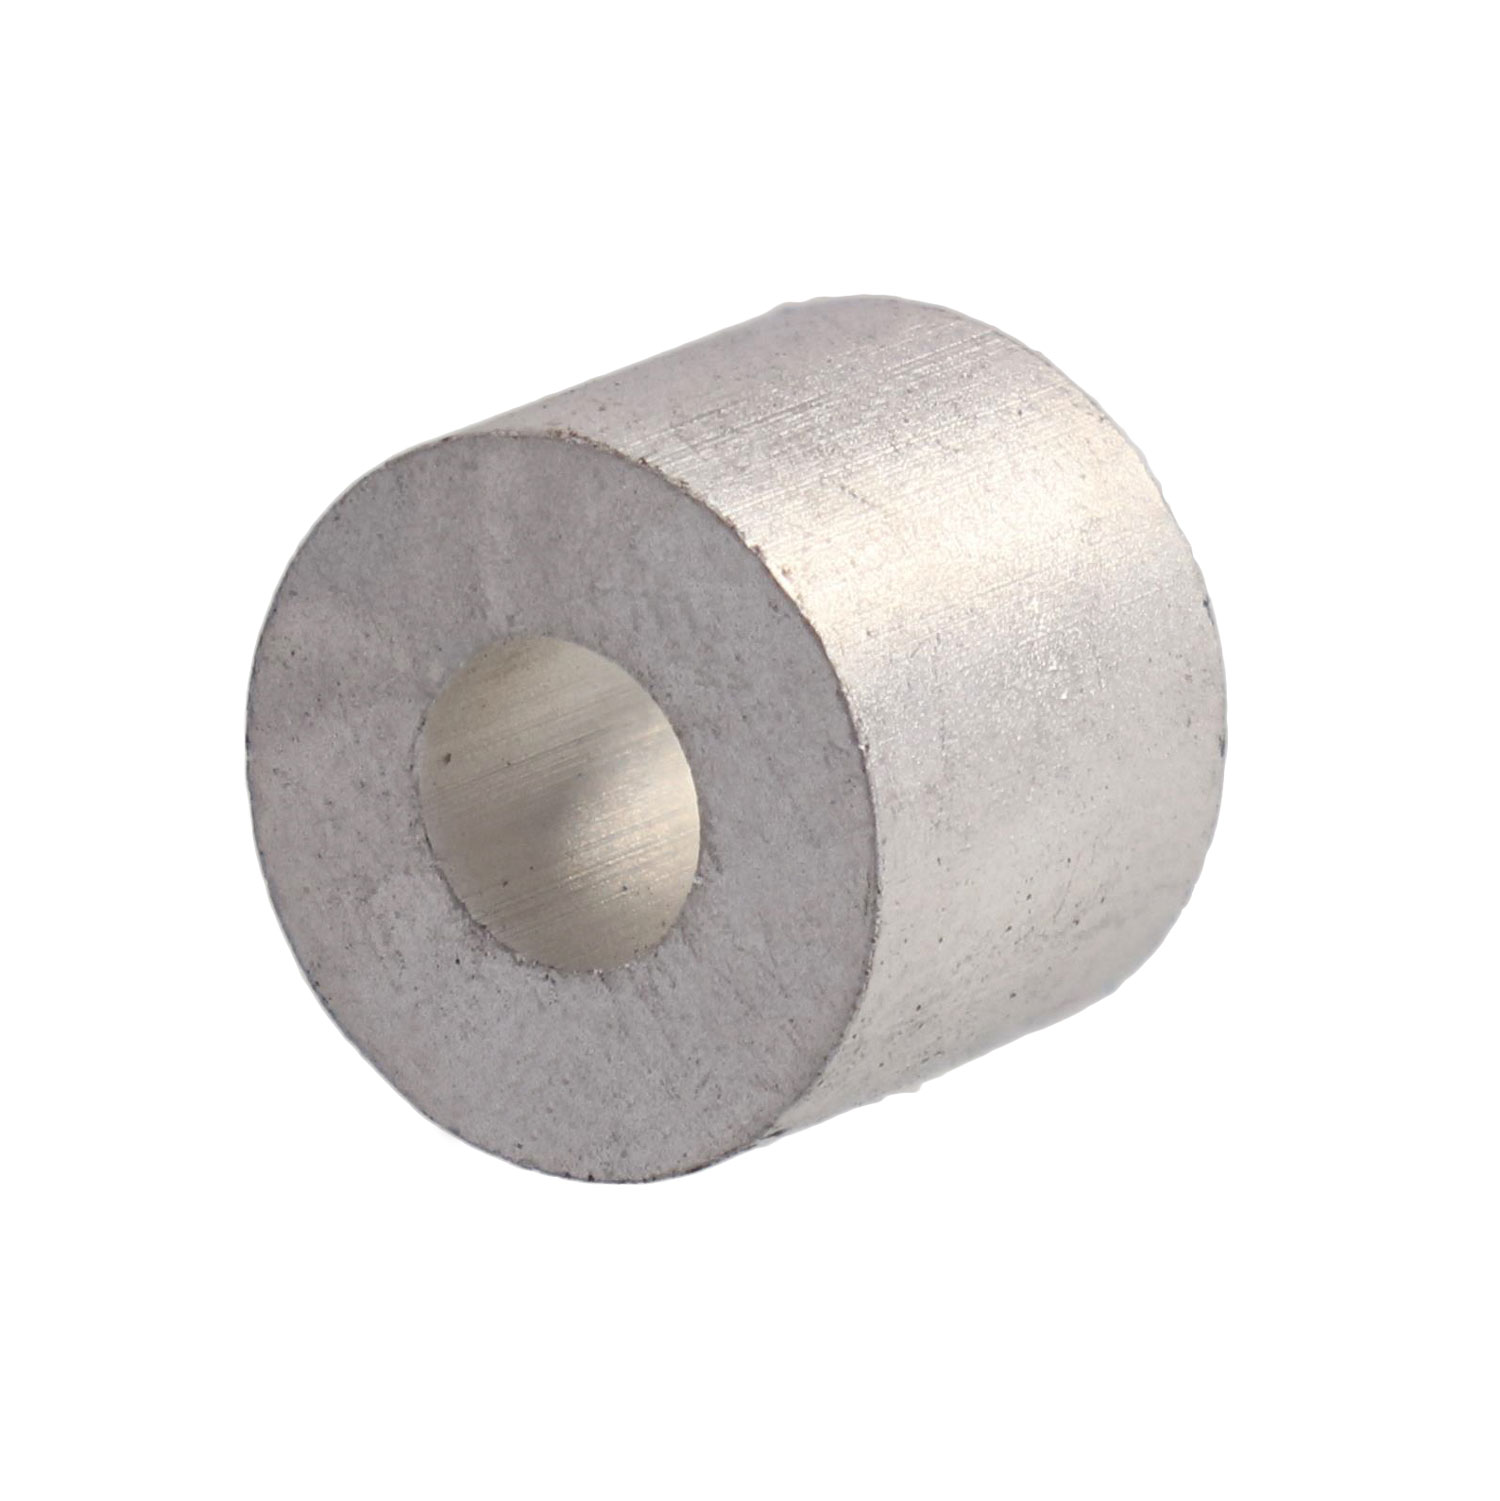 "5/32"" Aluminum Button Stop (Bag Qty. of 100) Image 1"